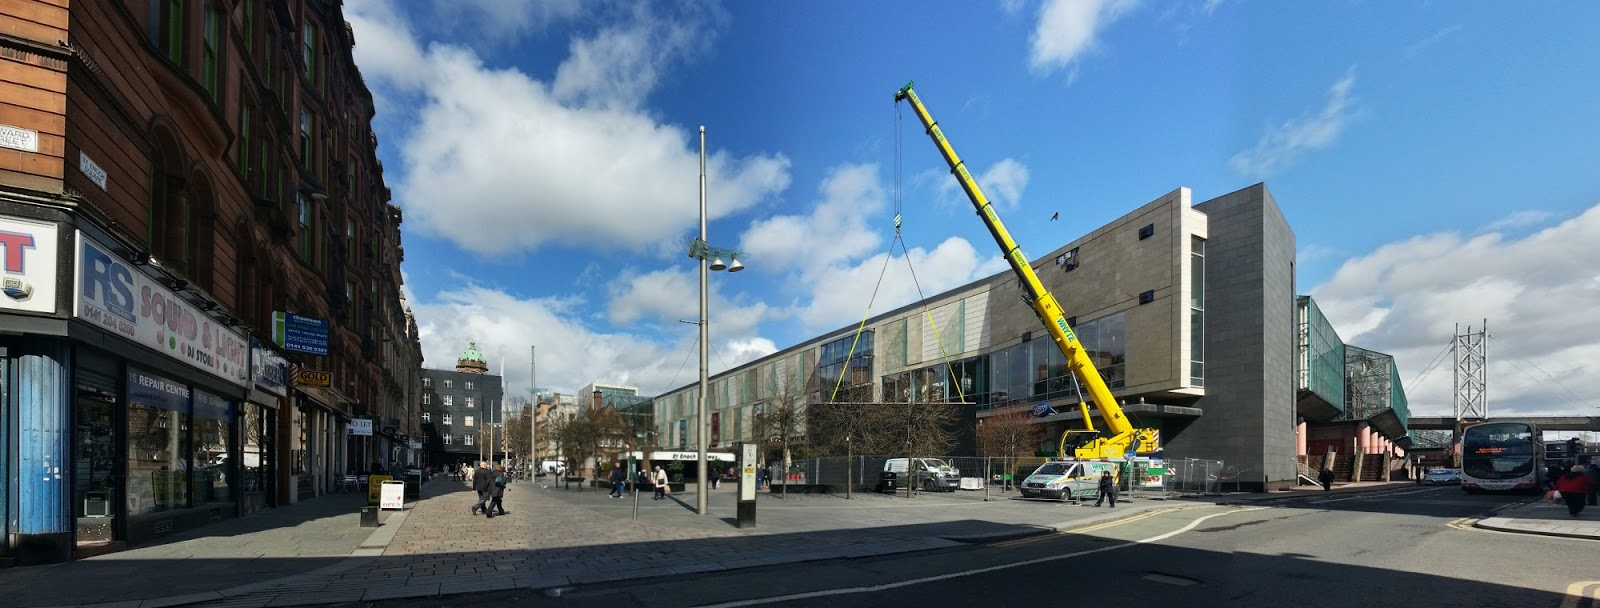 St Enoch, TV install, Glasgow